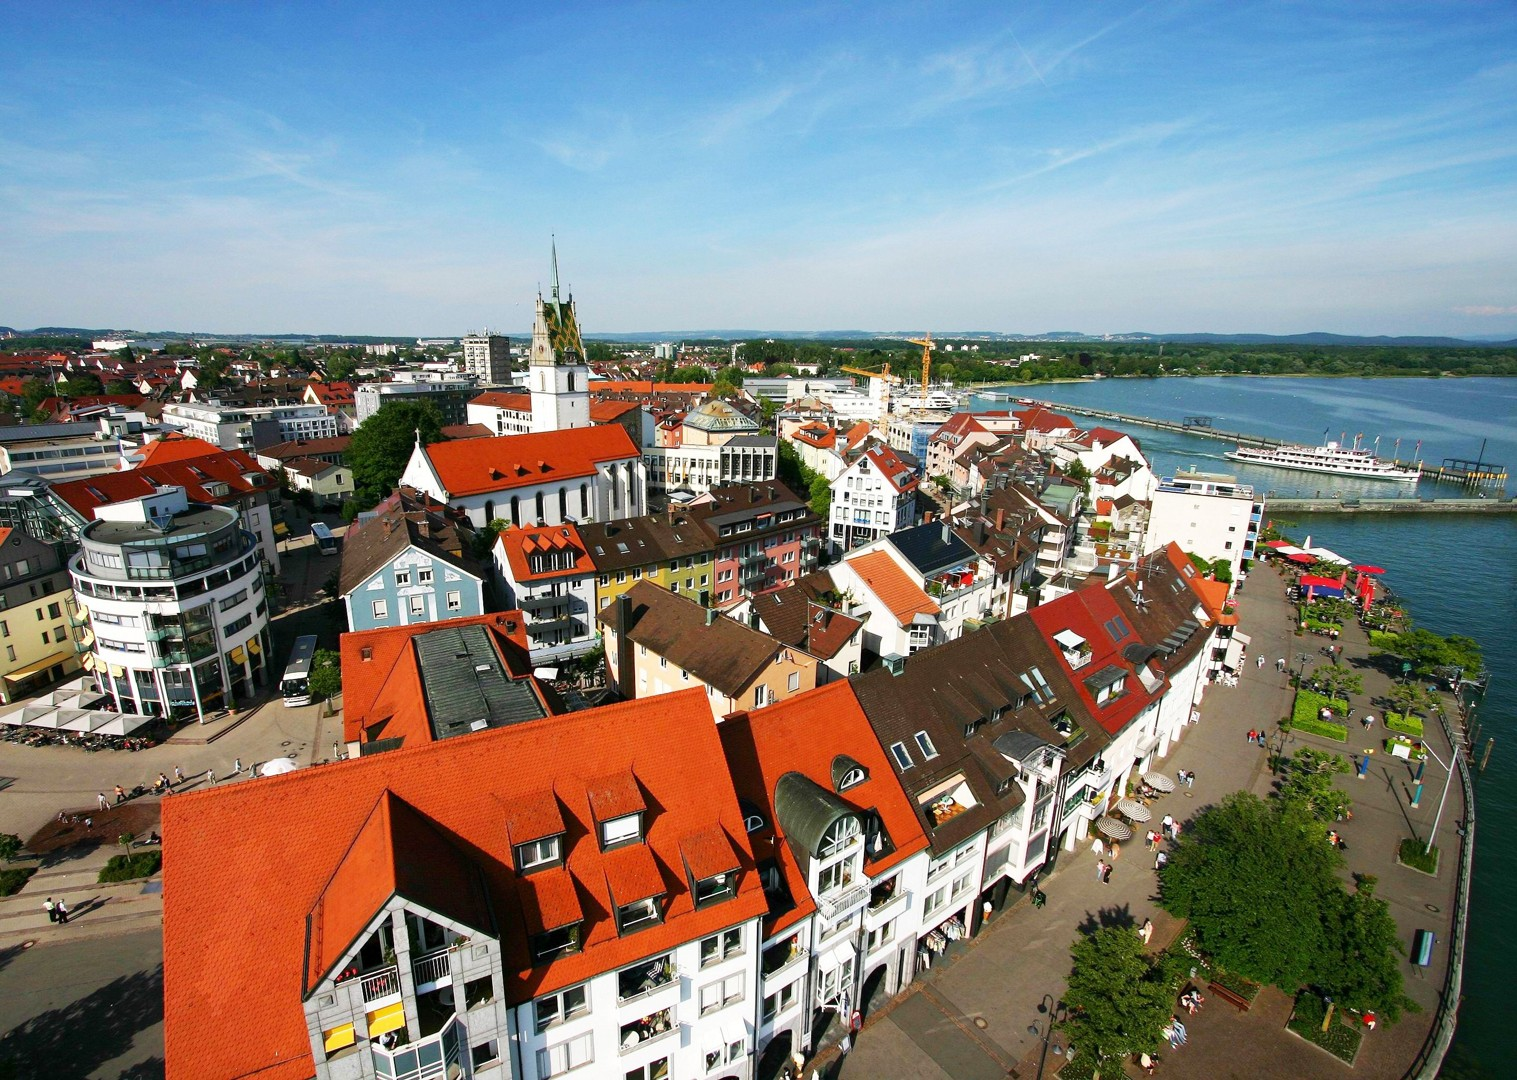 _Holiday.536.4651.jpg - Germany, Austria and Switzerland - Lake Constance - Self-Guided Family Cycling Holiday - Family Cycling